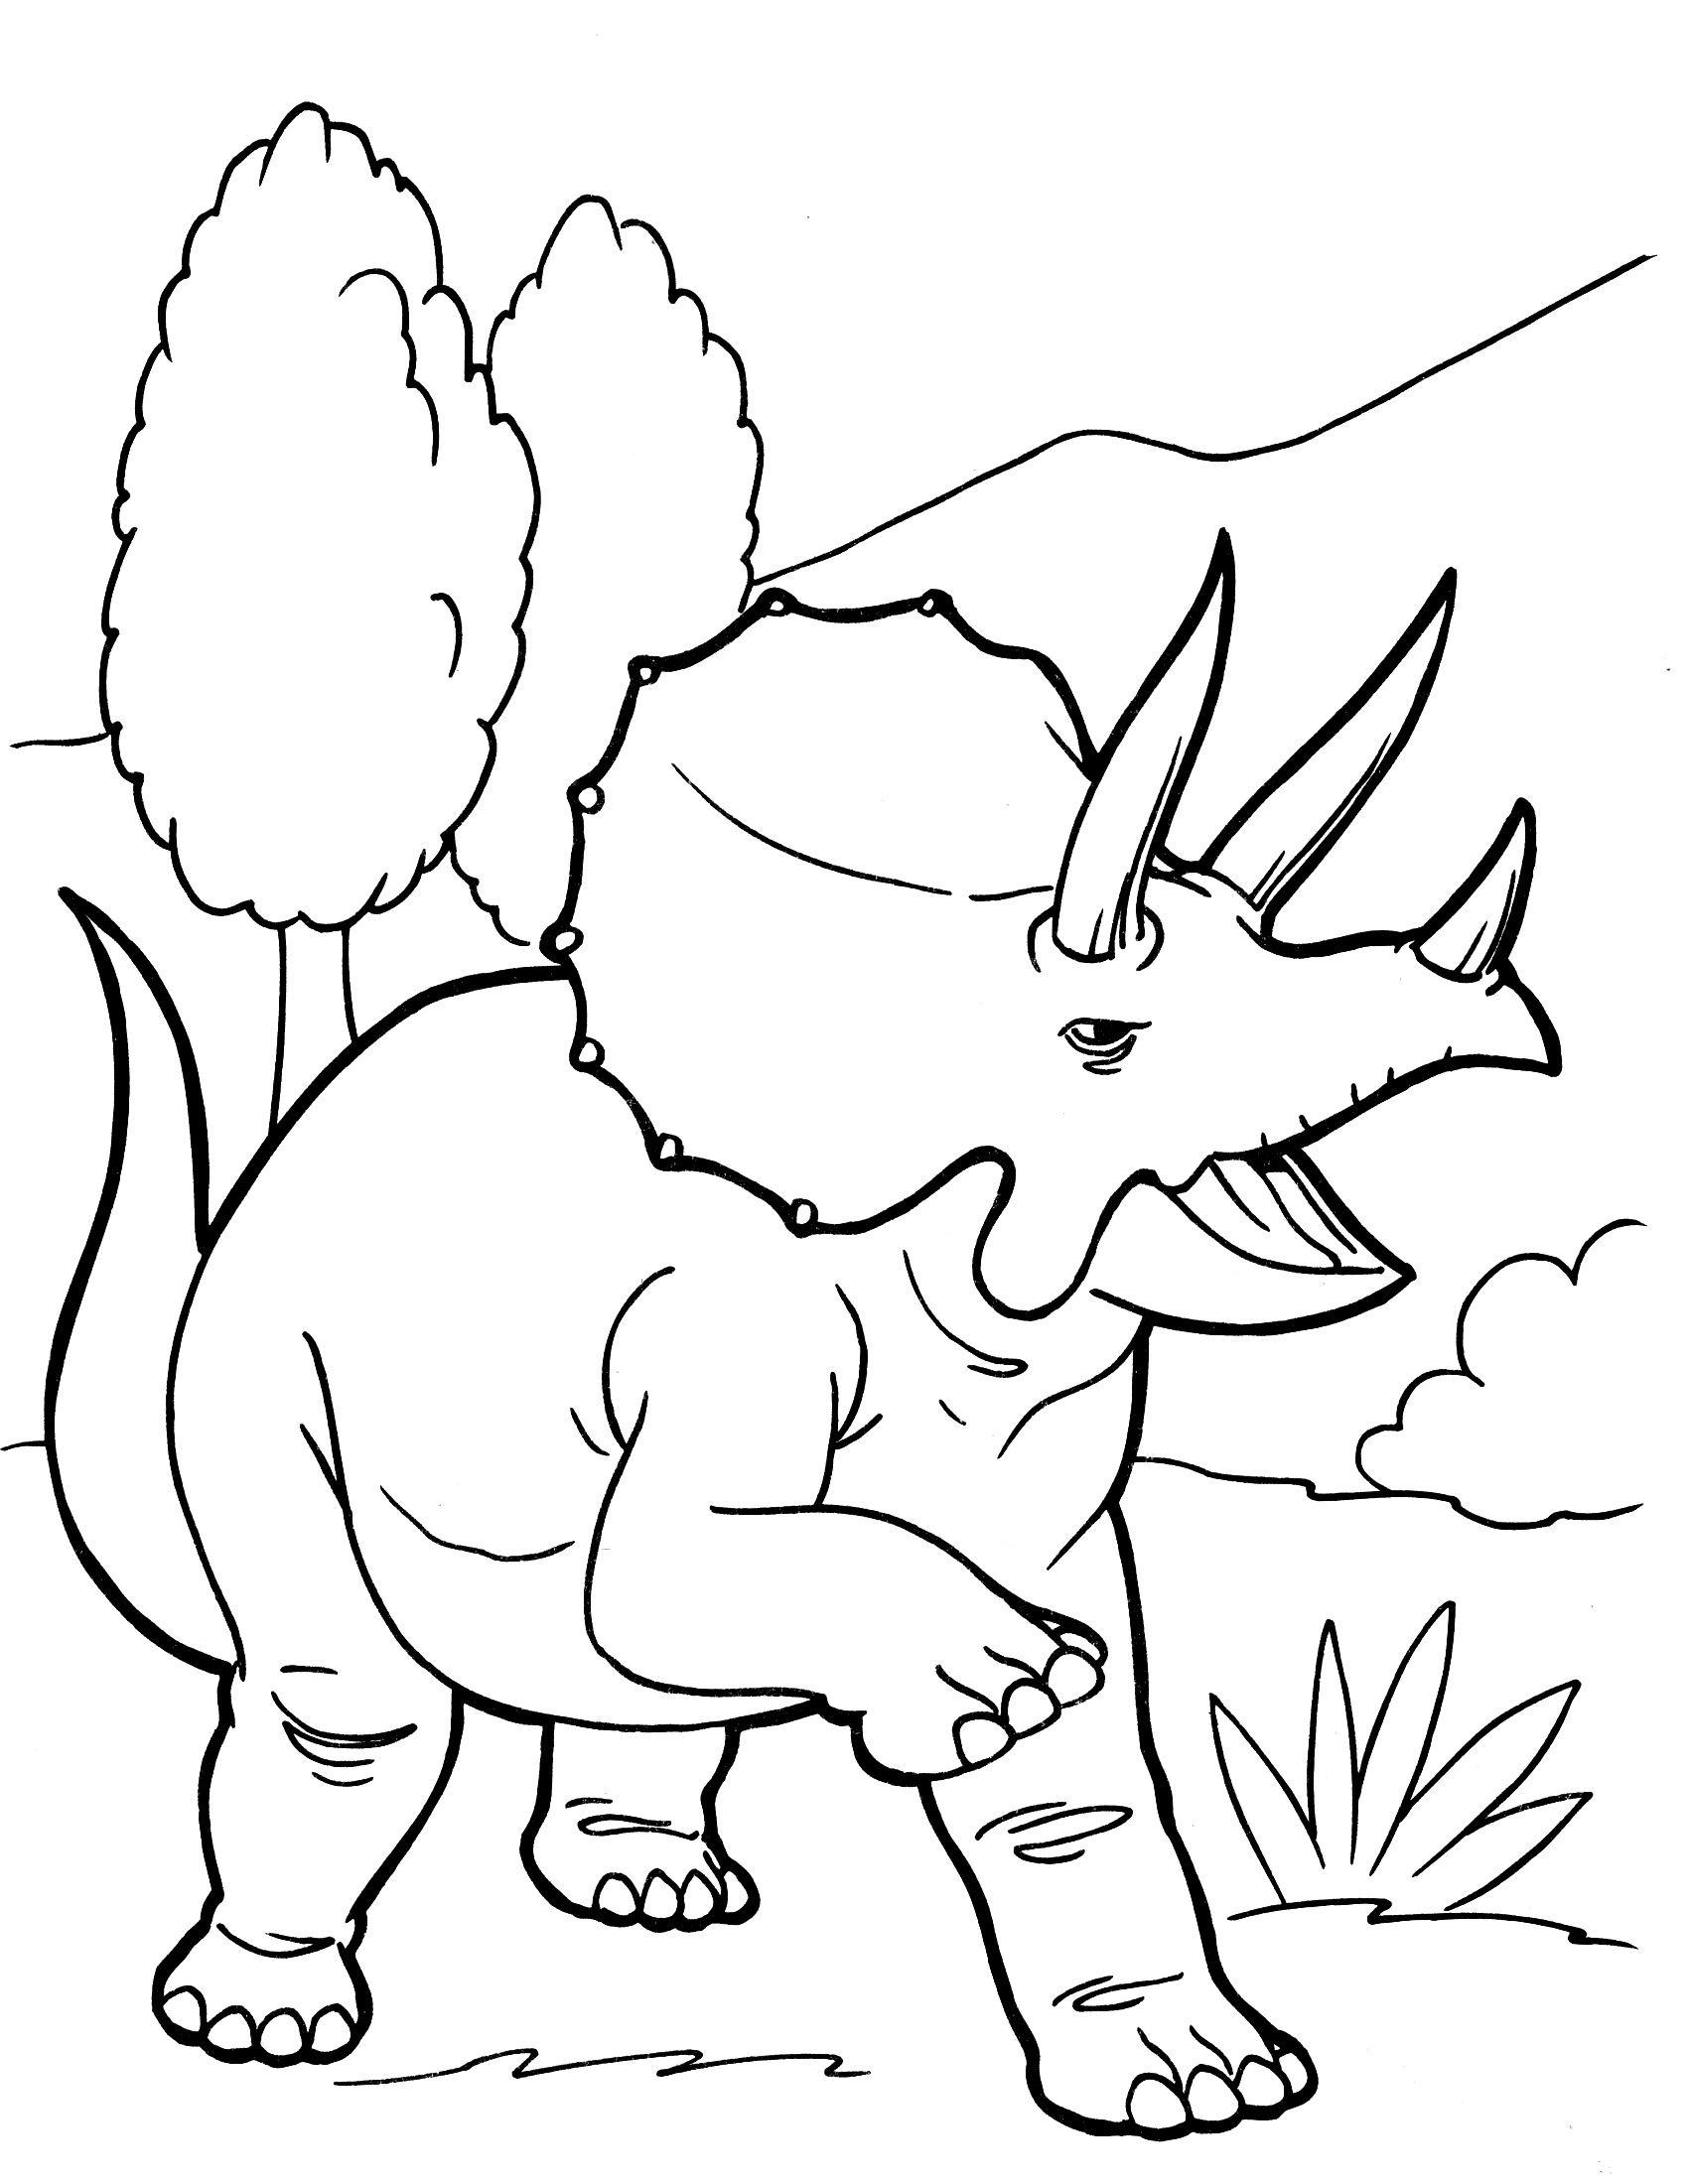 Dinosaur Paintings For Kids Description From Dinosaur Painting Games Dinosaur Coloring Pag Dinosaur Coloring Pages Dinosaur Coloring Sheets Dinosaur Coloring